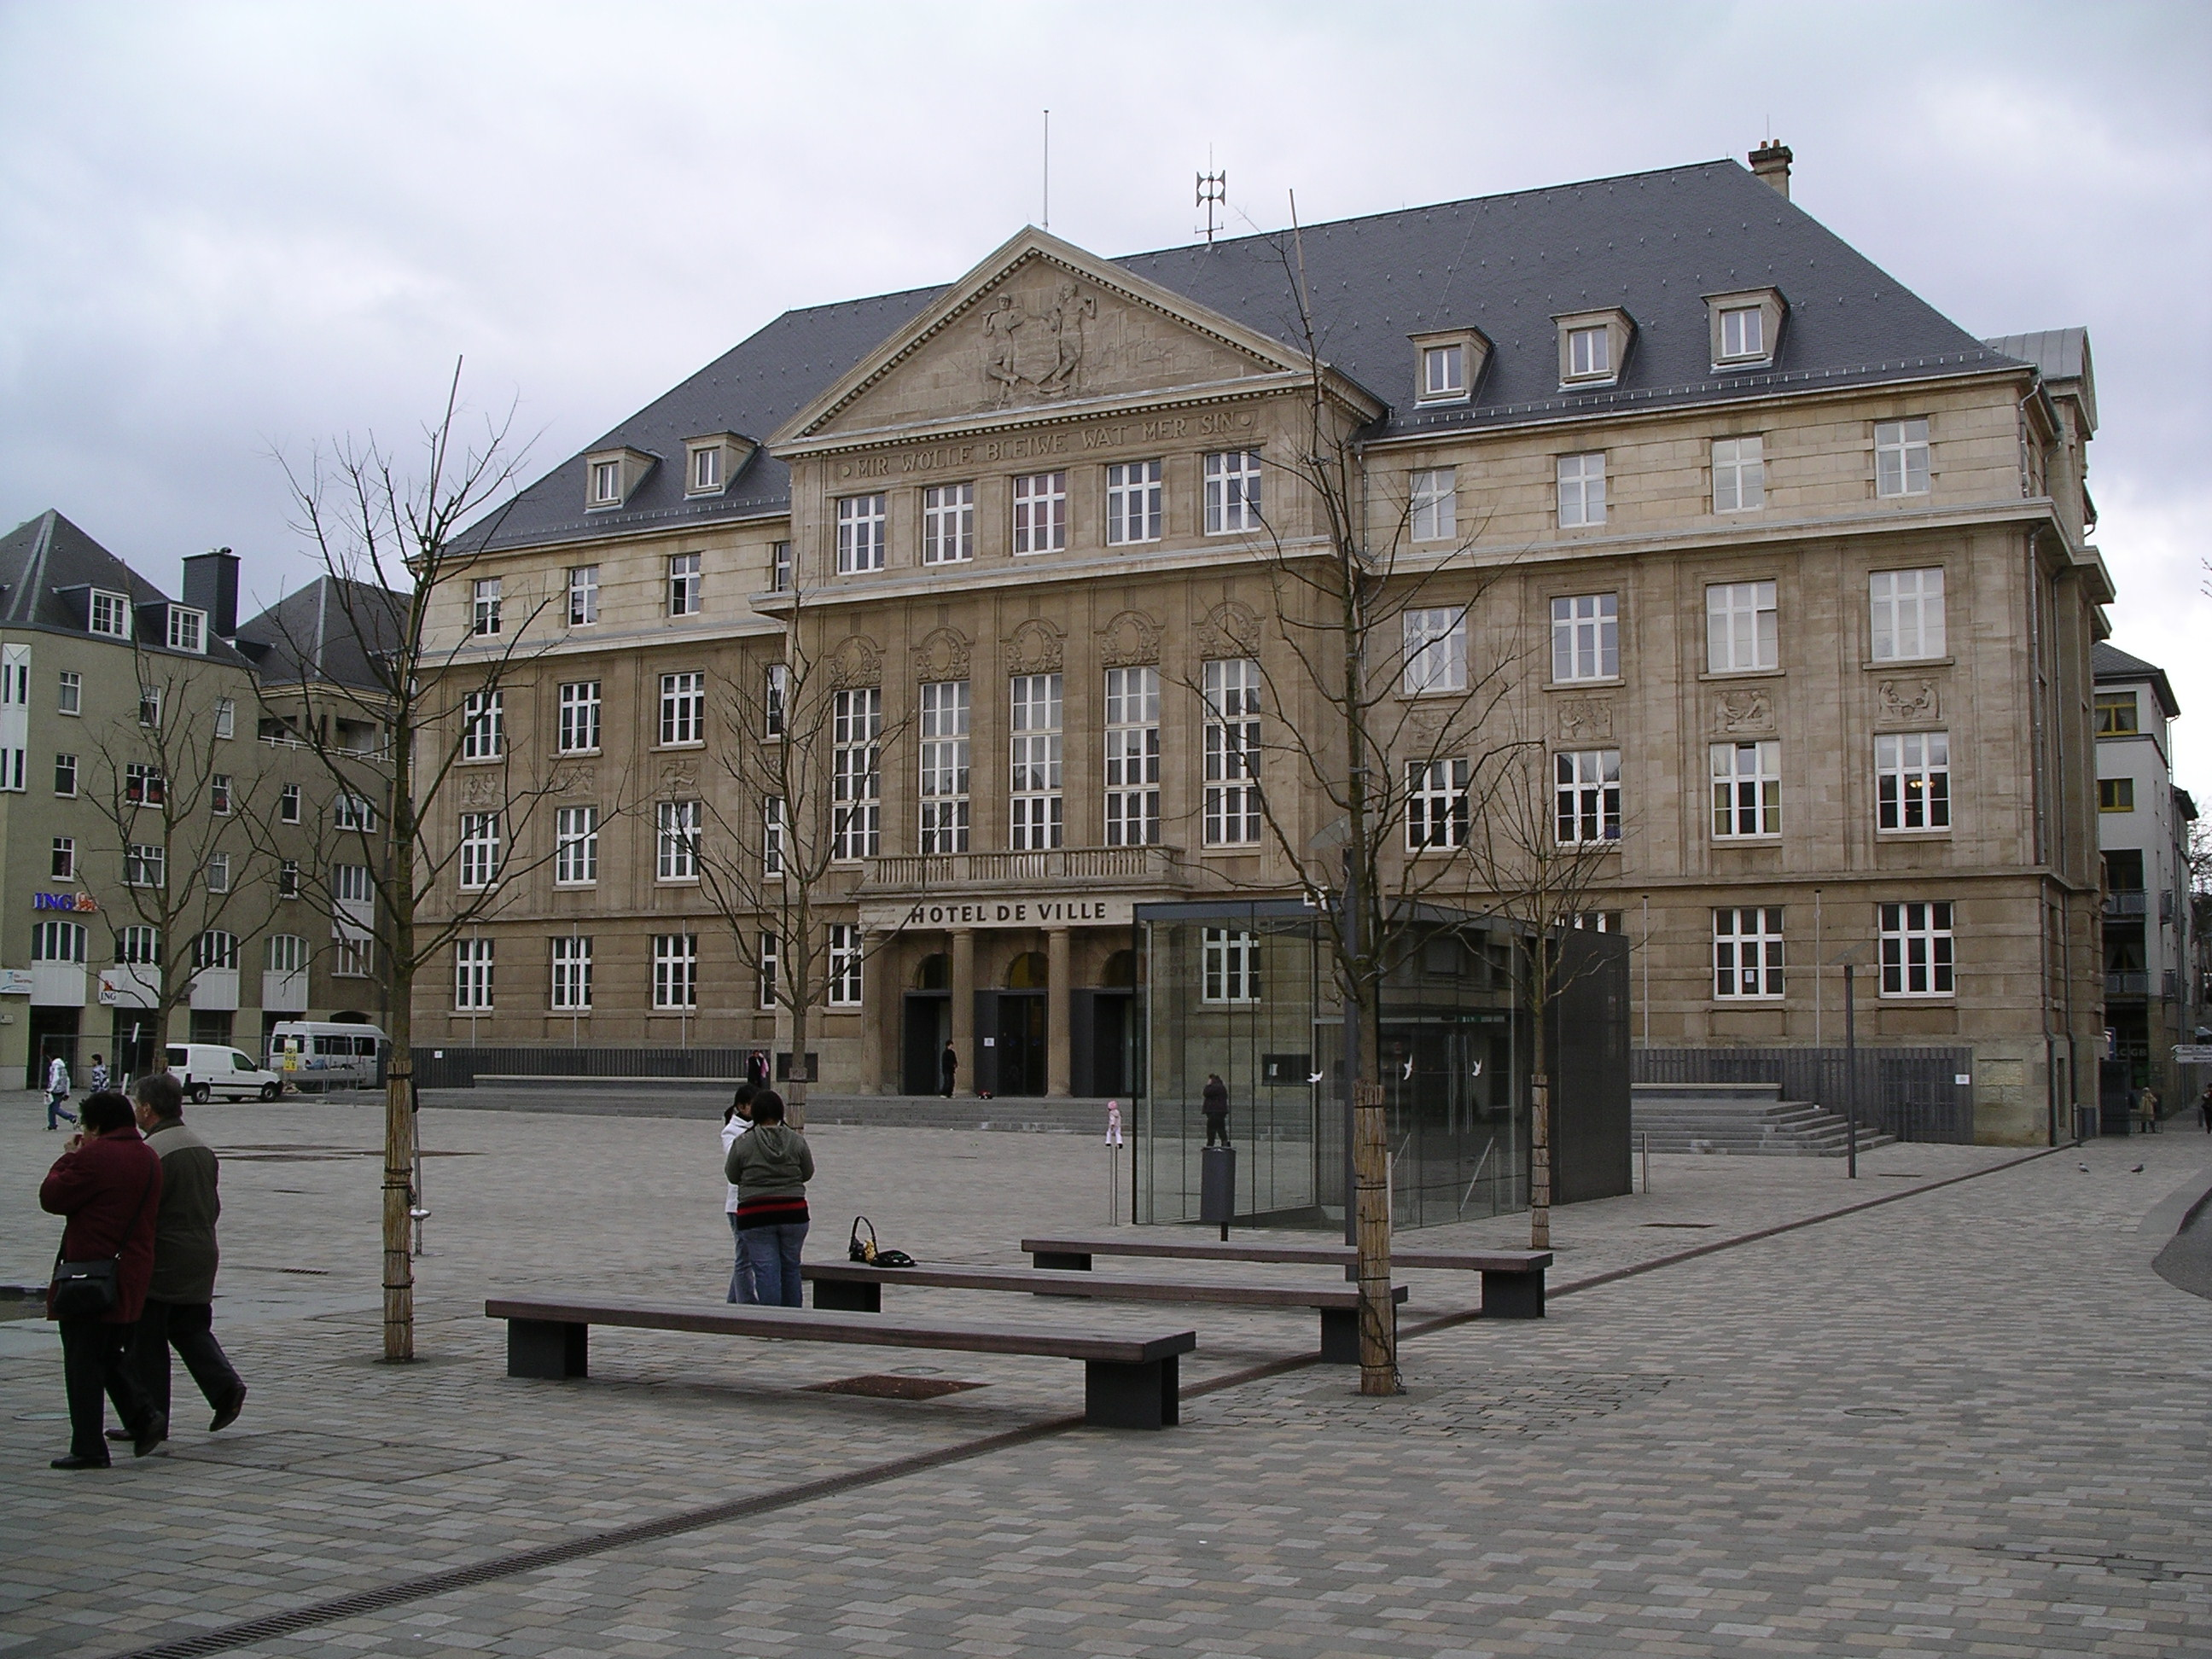 esch sur alzette senior dating site About 80% of luxembourg's jews live in luxembourg city, while there is a smaller community in the nearby town of esch-sur-alzette recent jewish immigrants, mainly from france, have also made their home in the country.